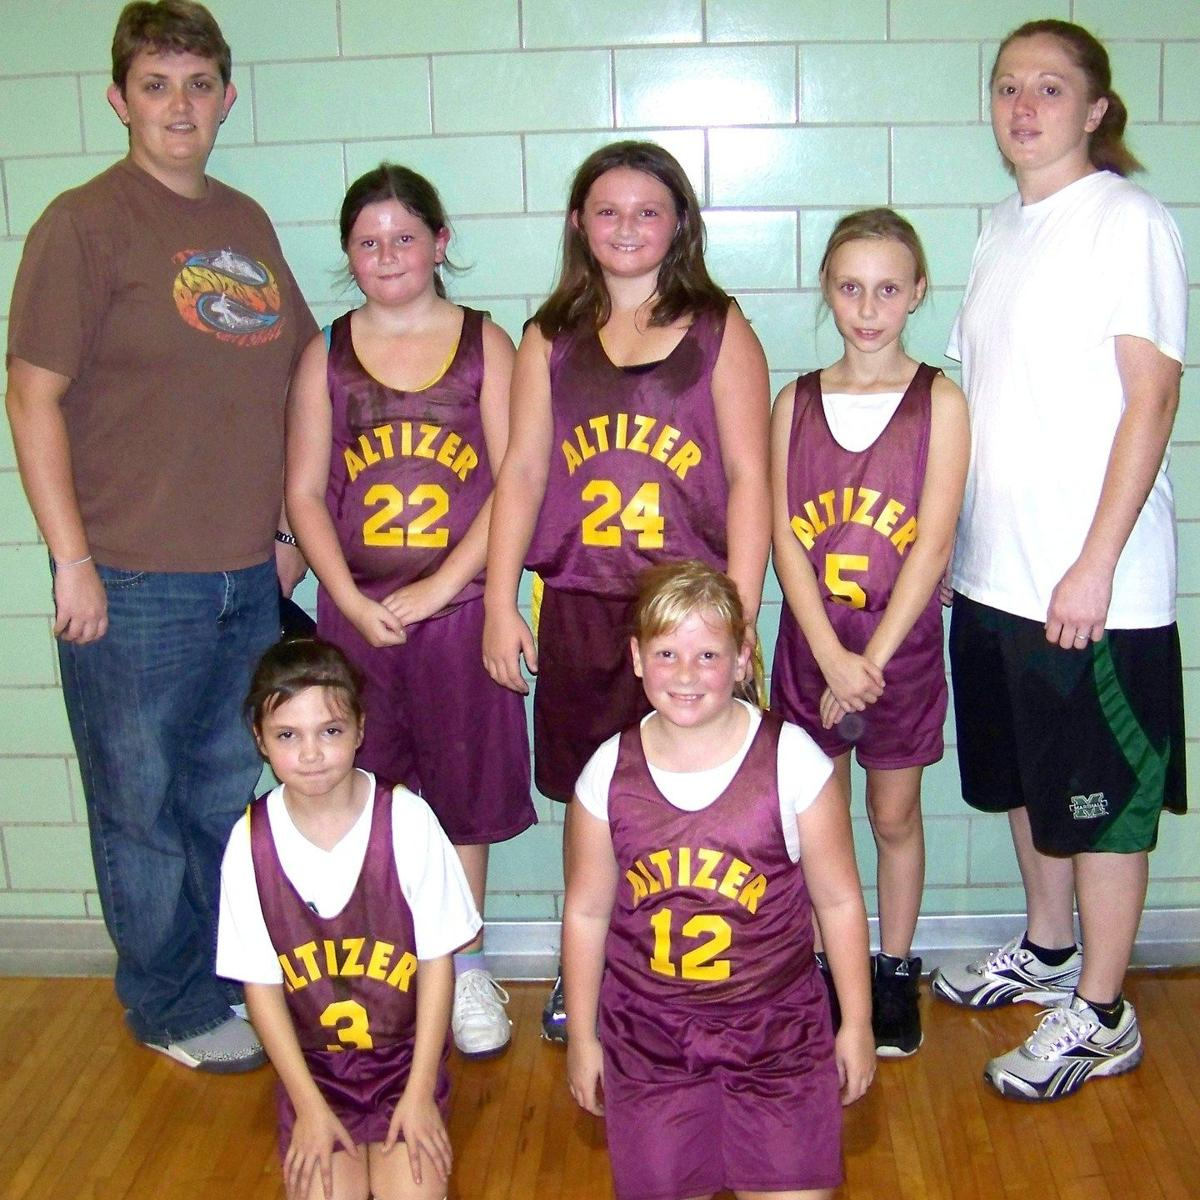 Clyde Beal: Youth sports program provides foundation for